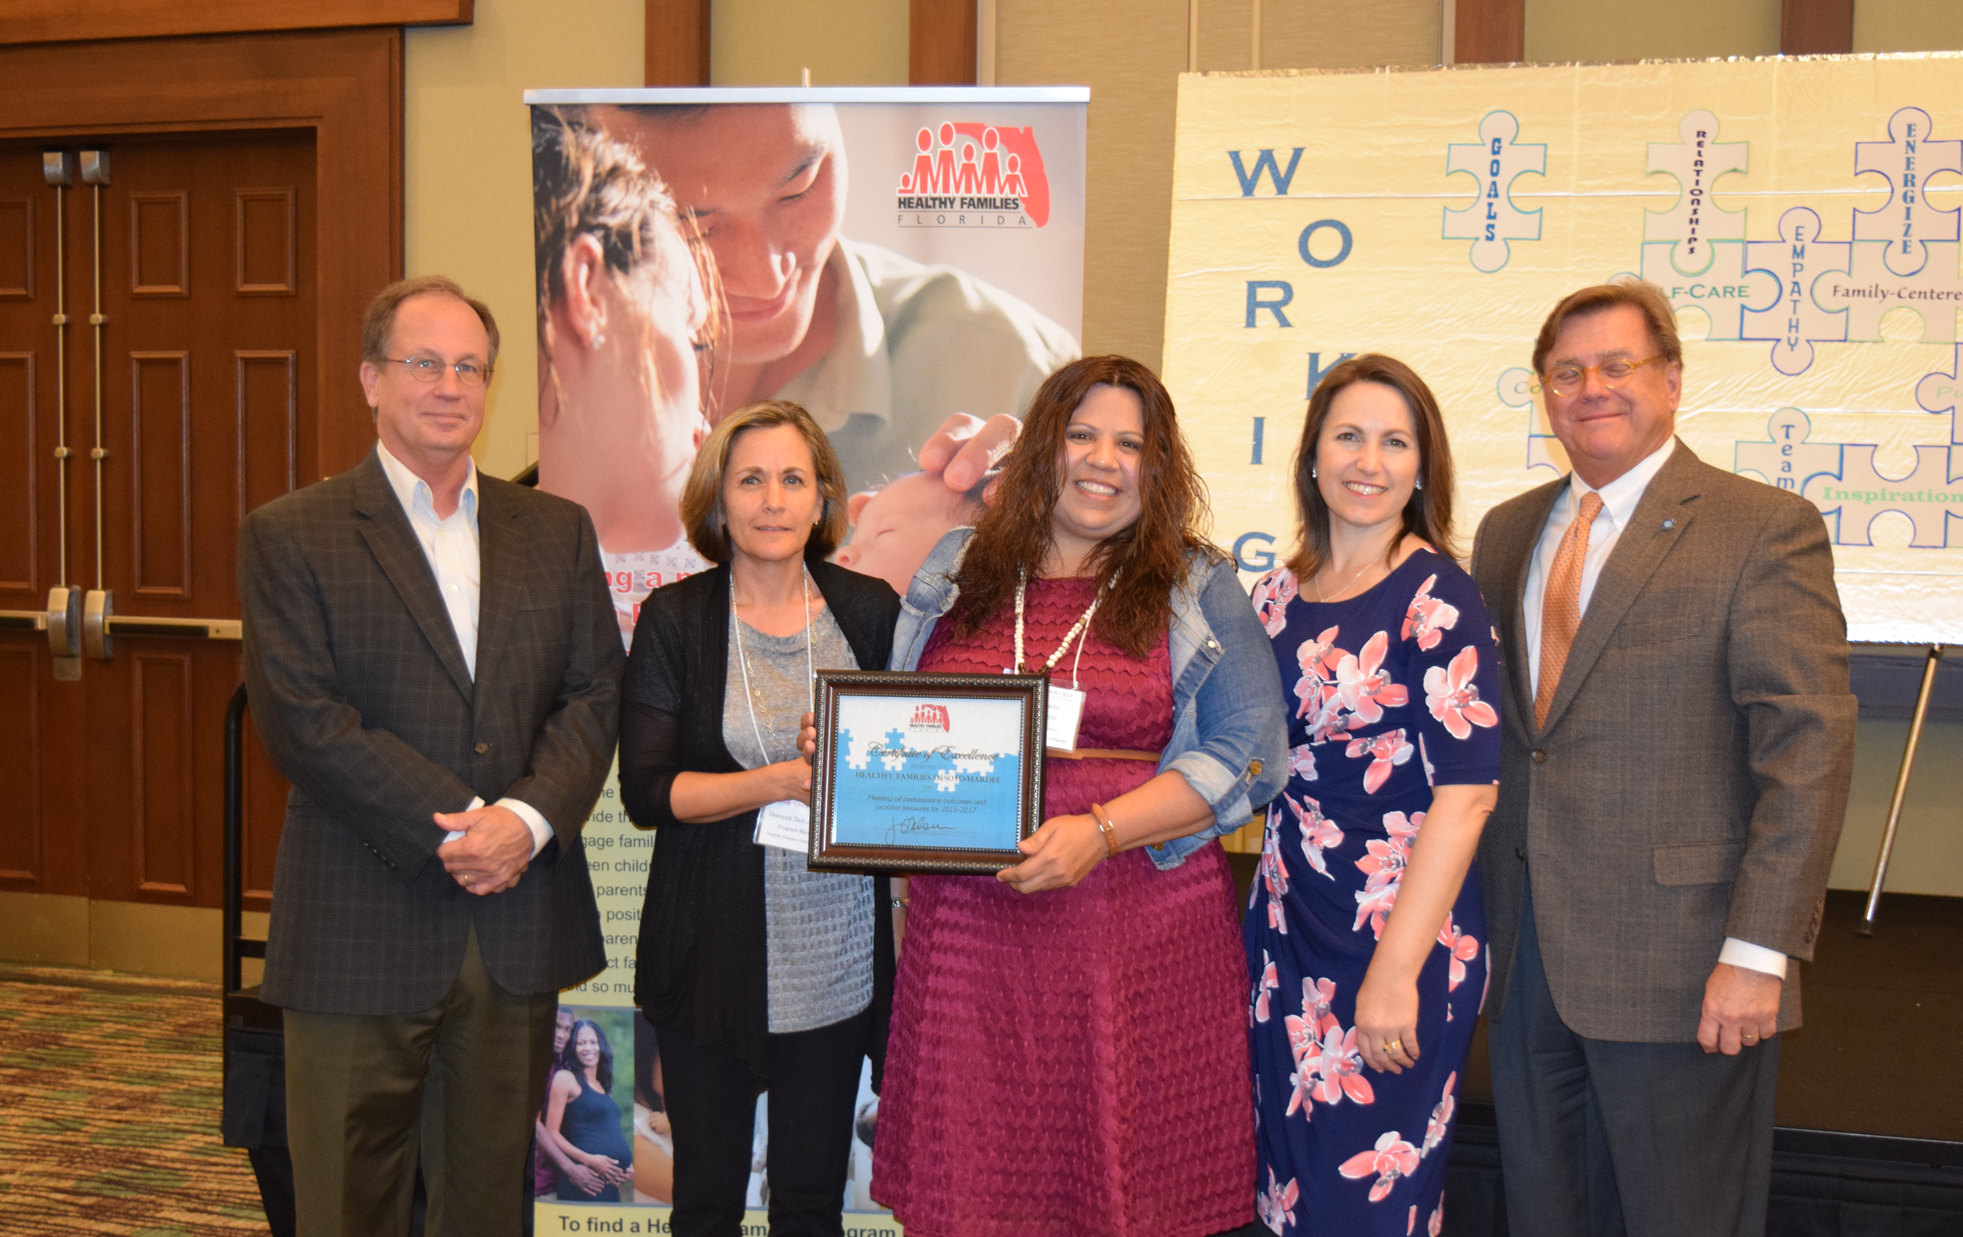 HF DeSoto-Hardee Staff Receive Award